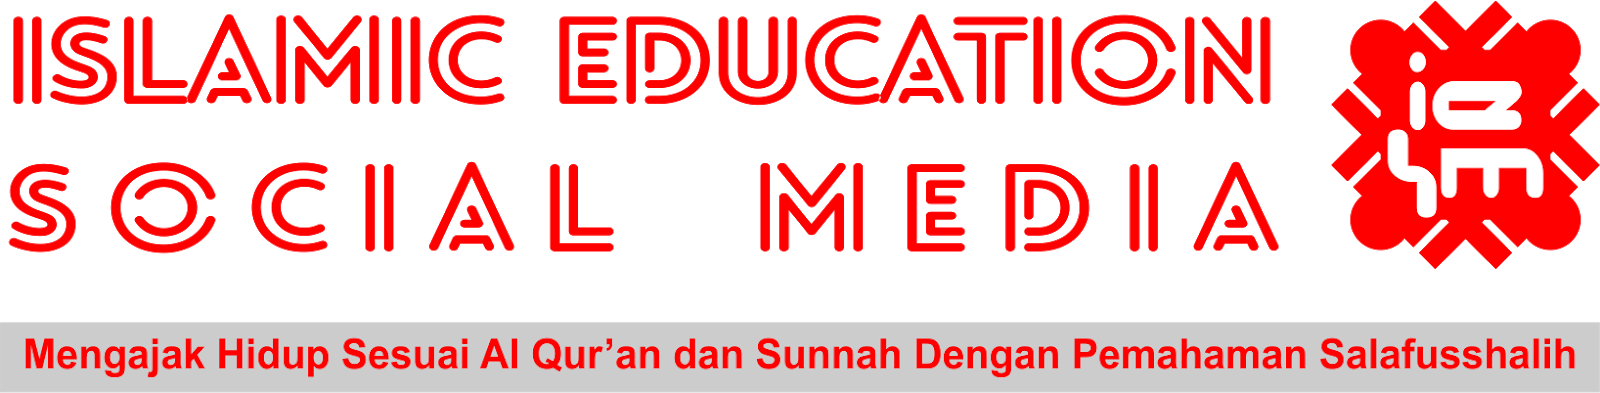 Dedy Sumarhadi - Islamic Education Social Media